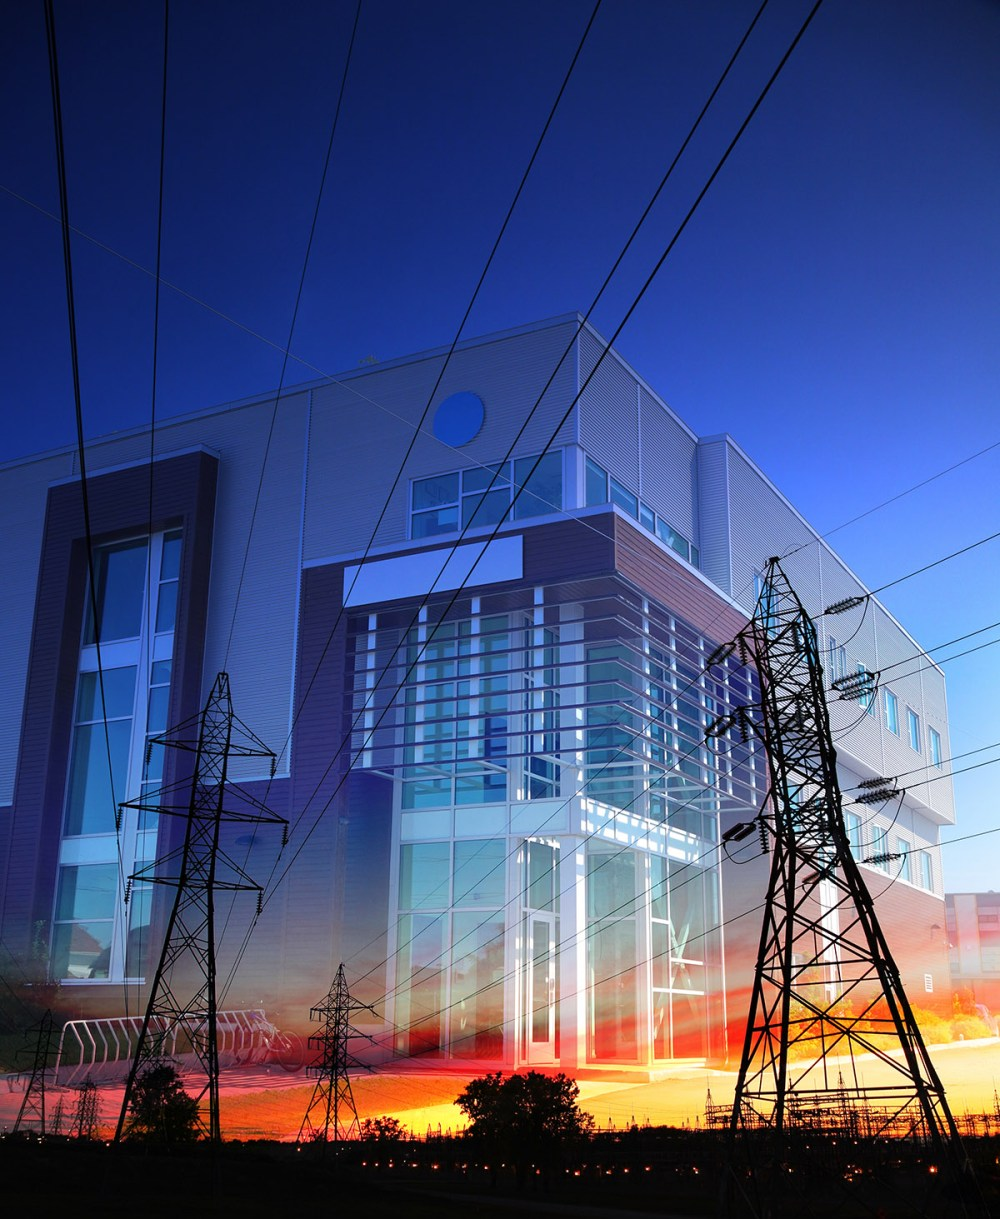 Office-Building-with-Electric-Pylons-Photo-Montage